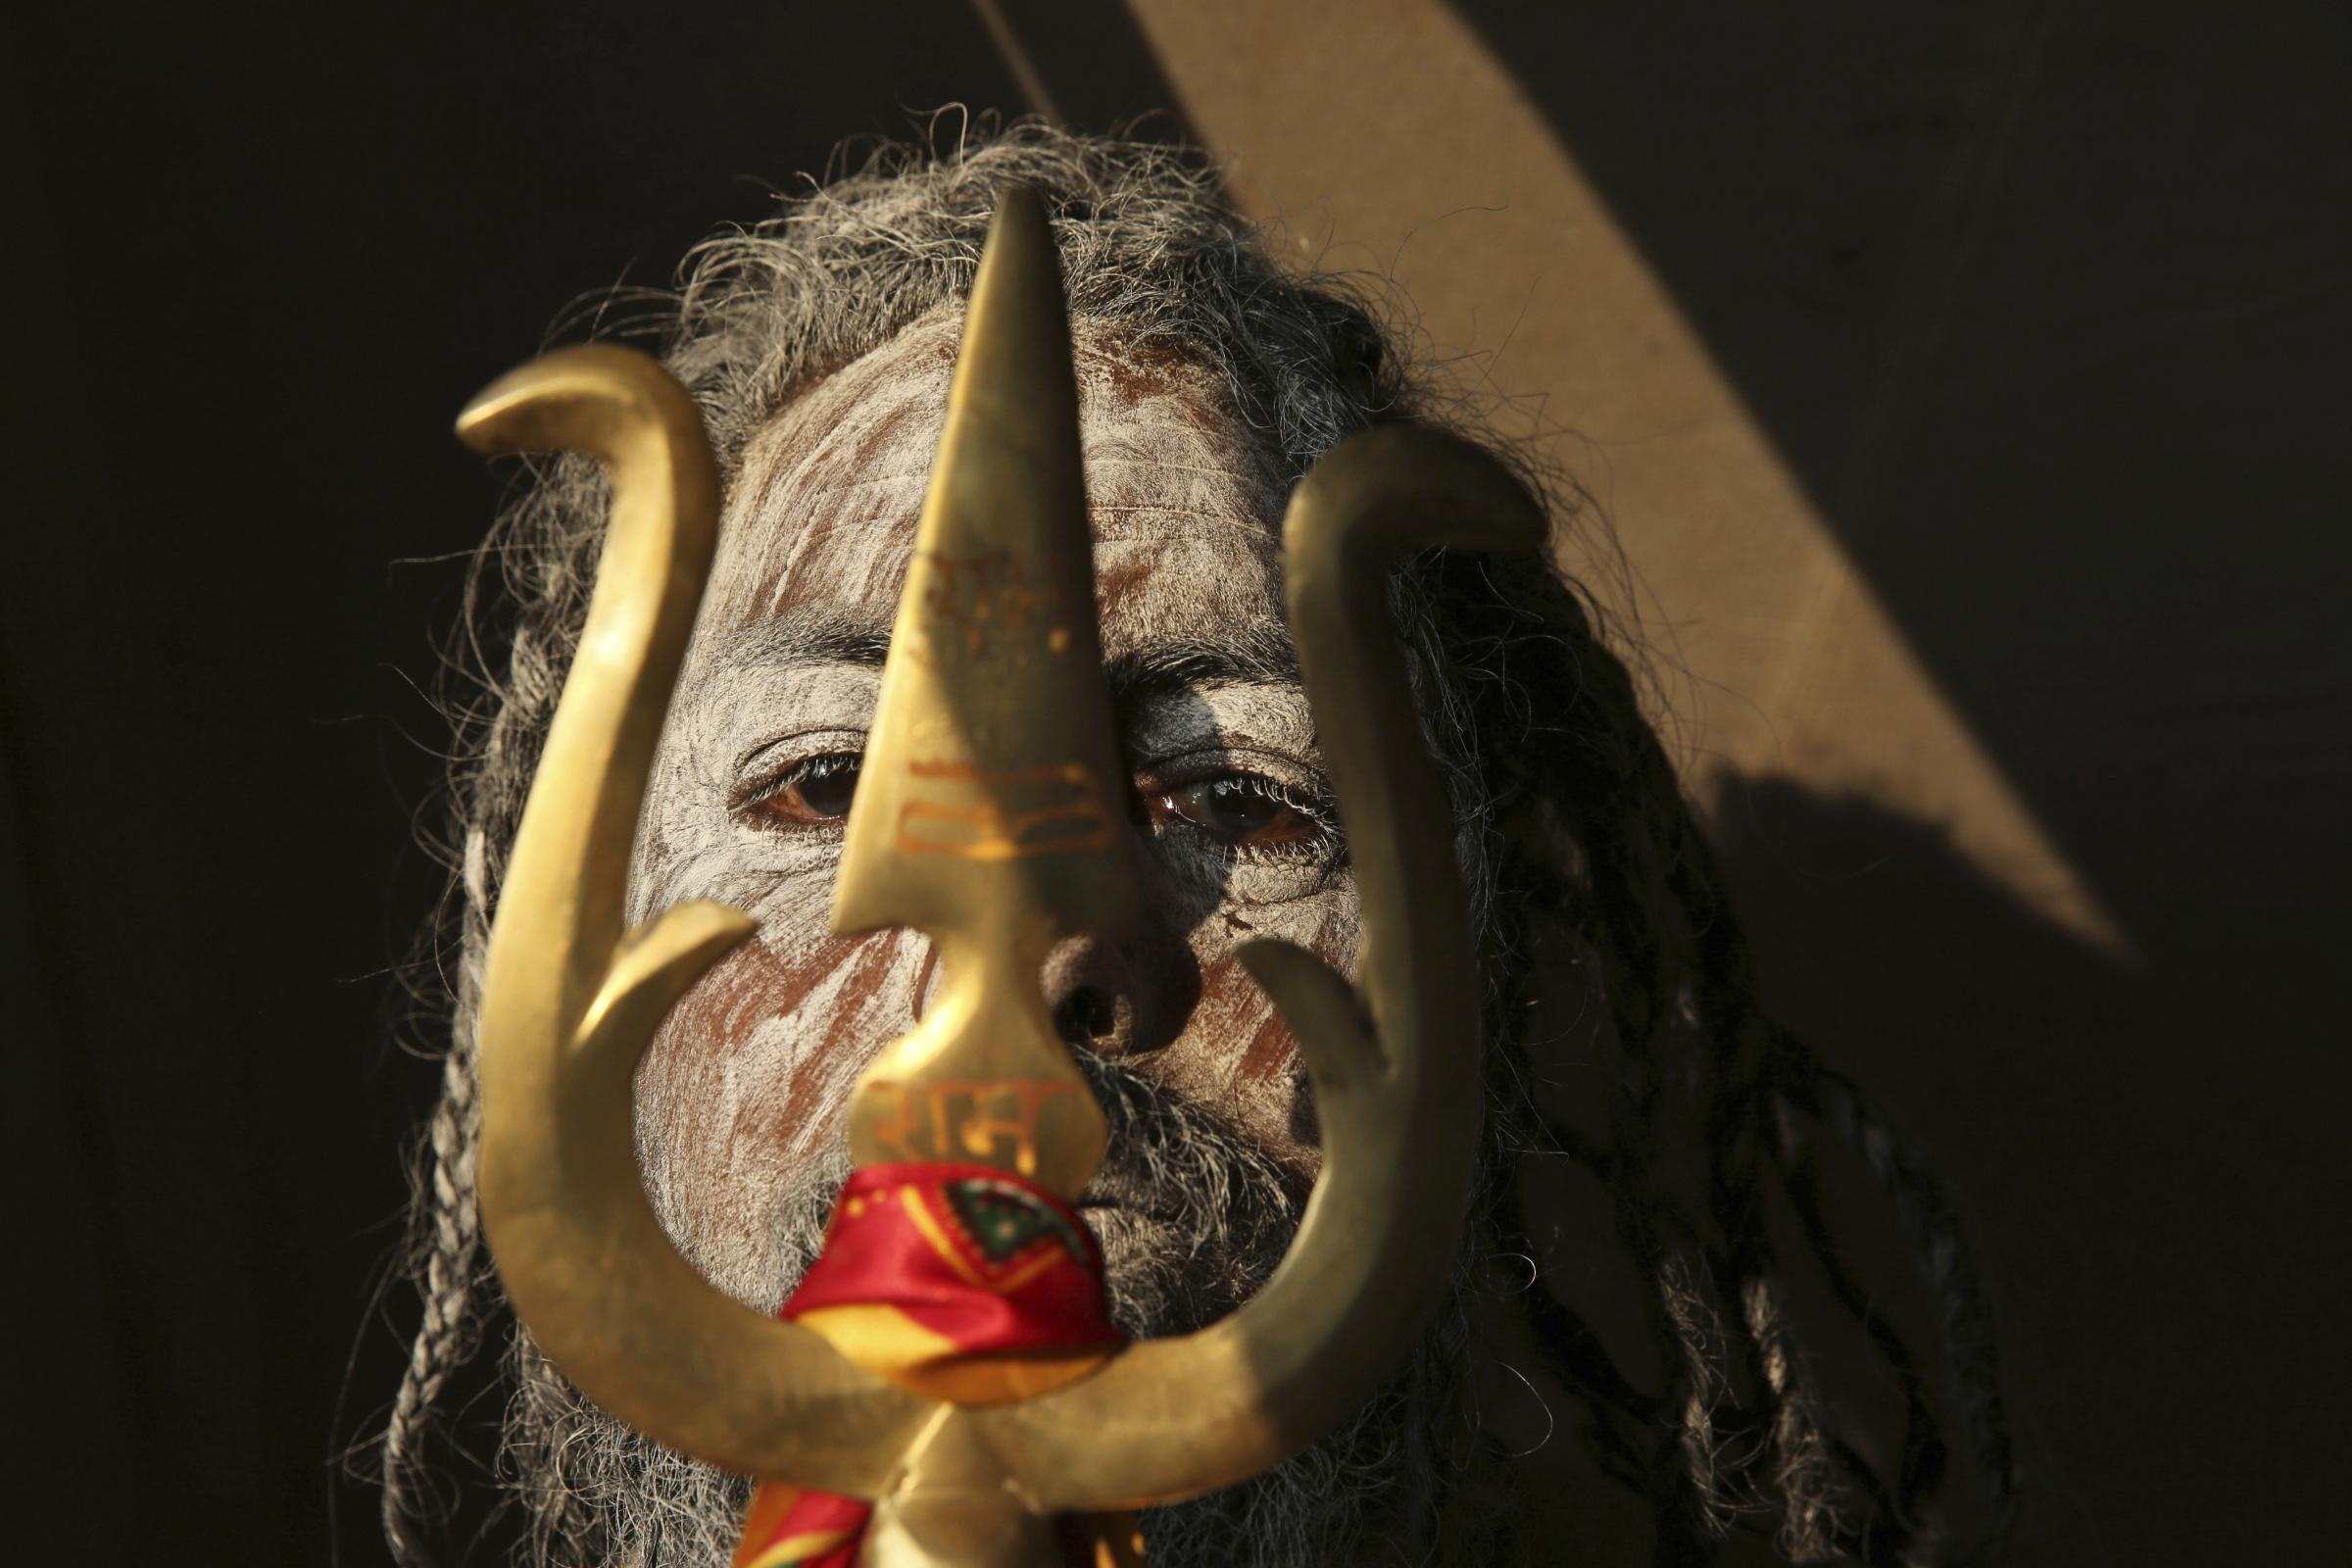 A Naga Sadhu stands with  trident as he participates in a procession towards the Sangam, the confluence of rivers Ganges and Yamuna. AP /Rajesh Kumar Singh).